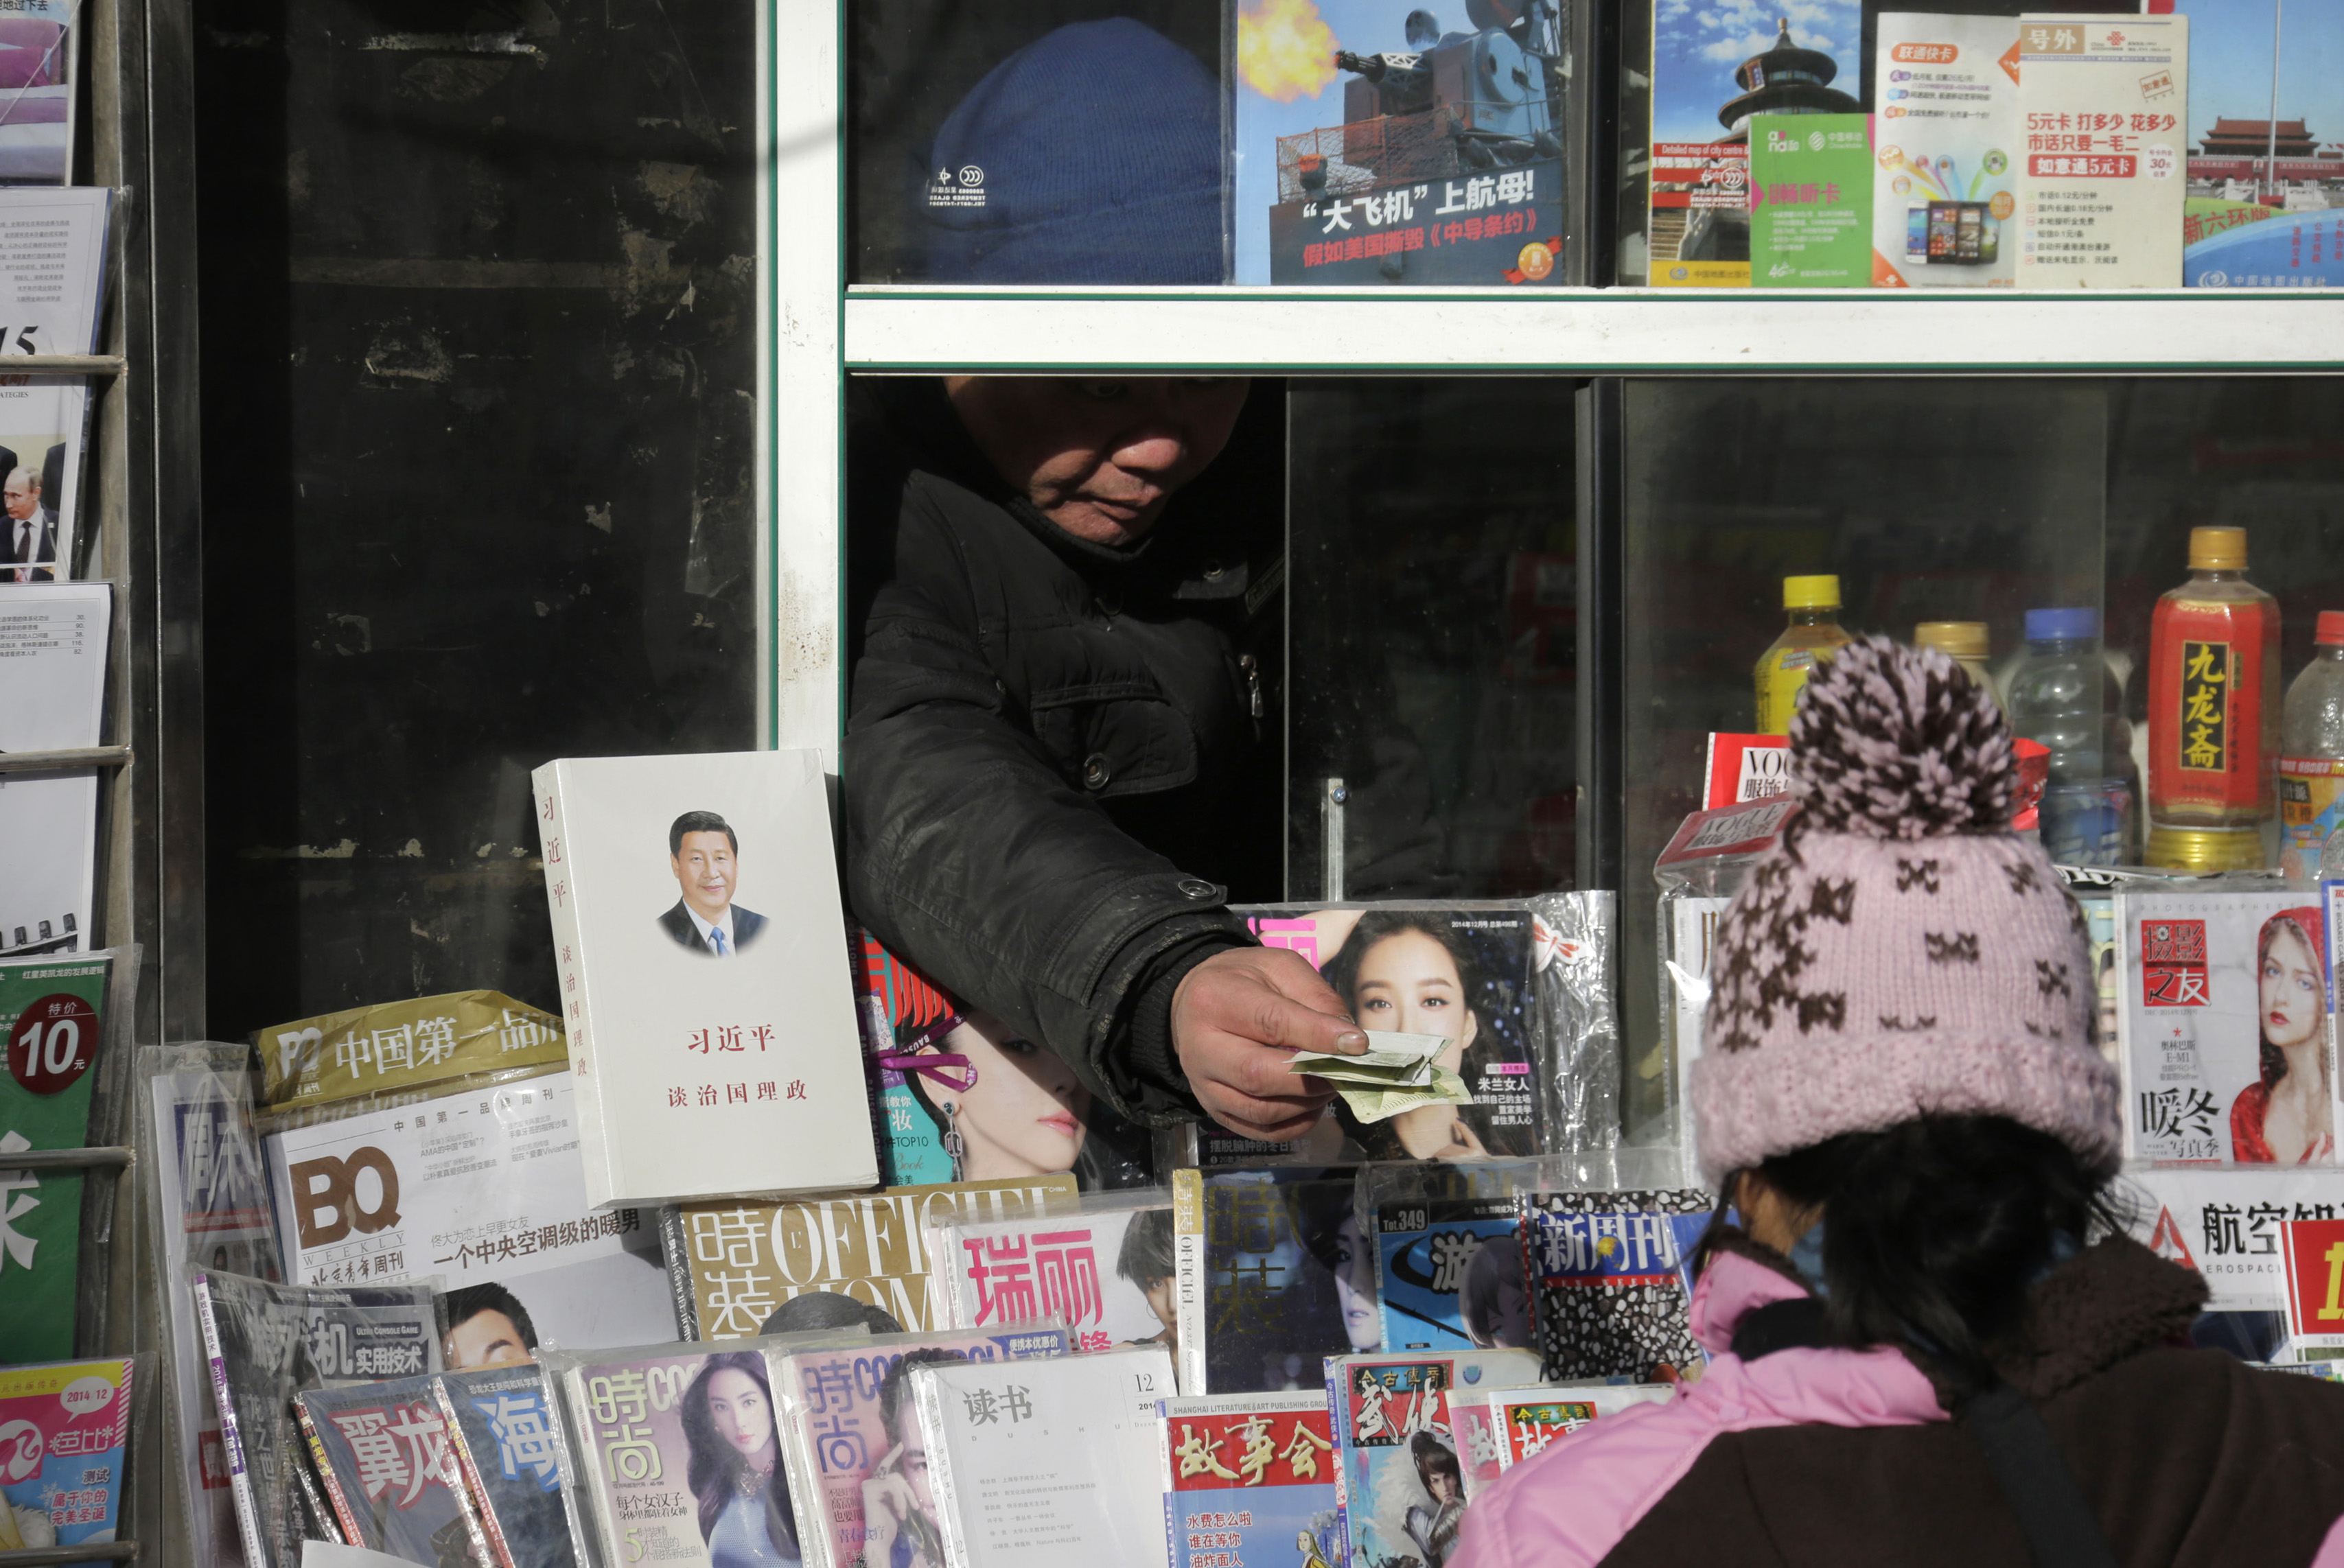 A newsstand vendor returns change to a customer near a book titled Xi Jinping: The Governance of China displayed on sale in central Beijing on Dec. 10, 2014